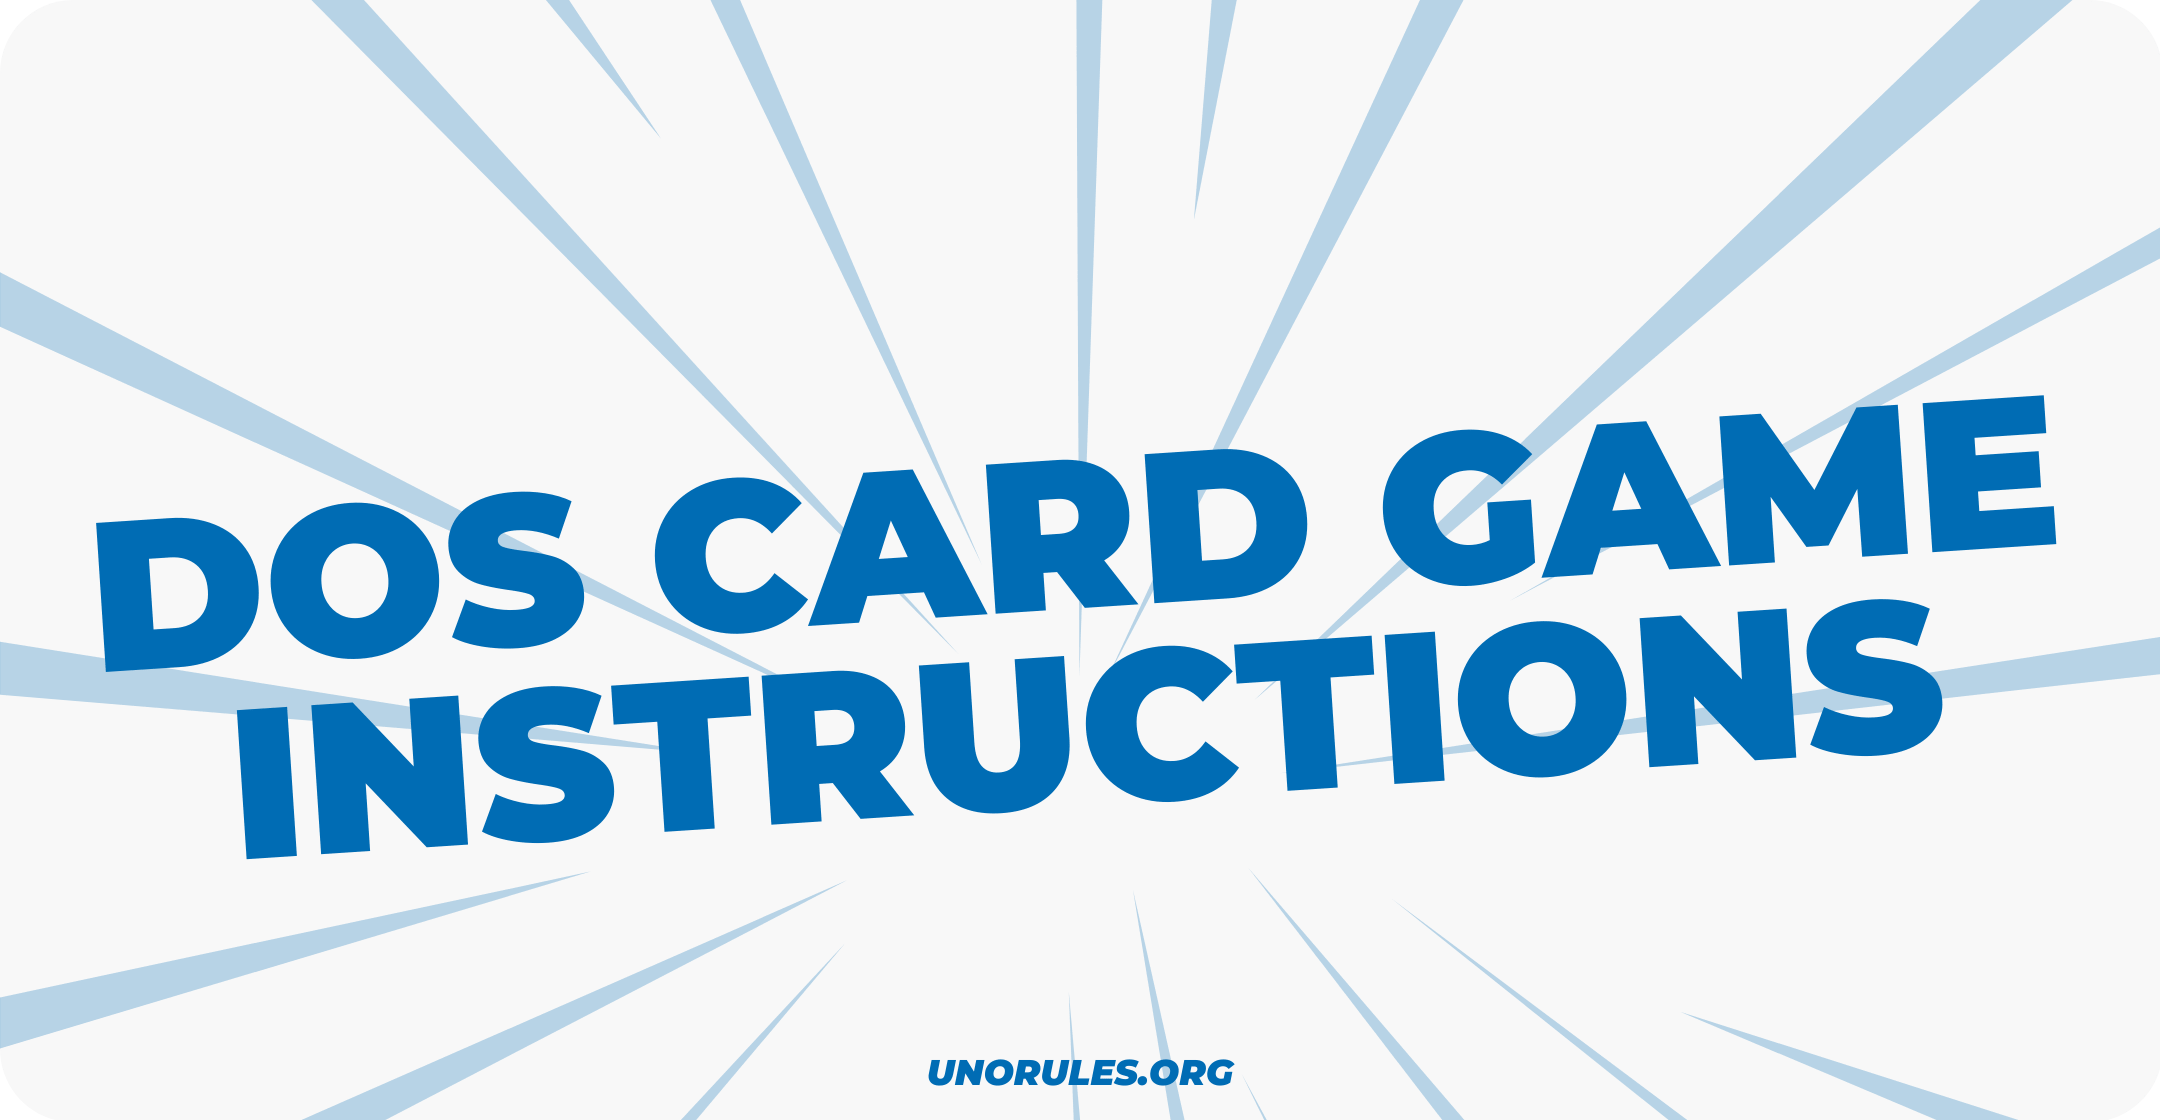 Dos card game instructions